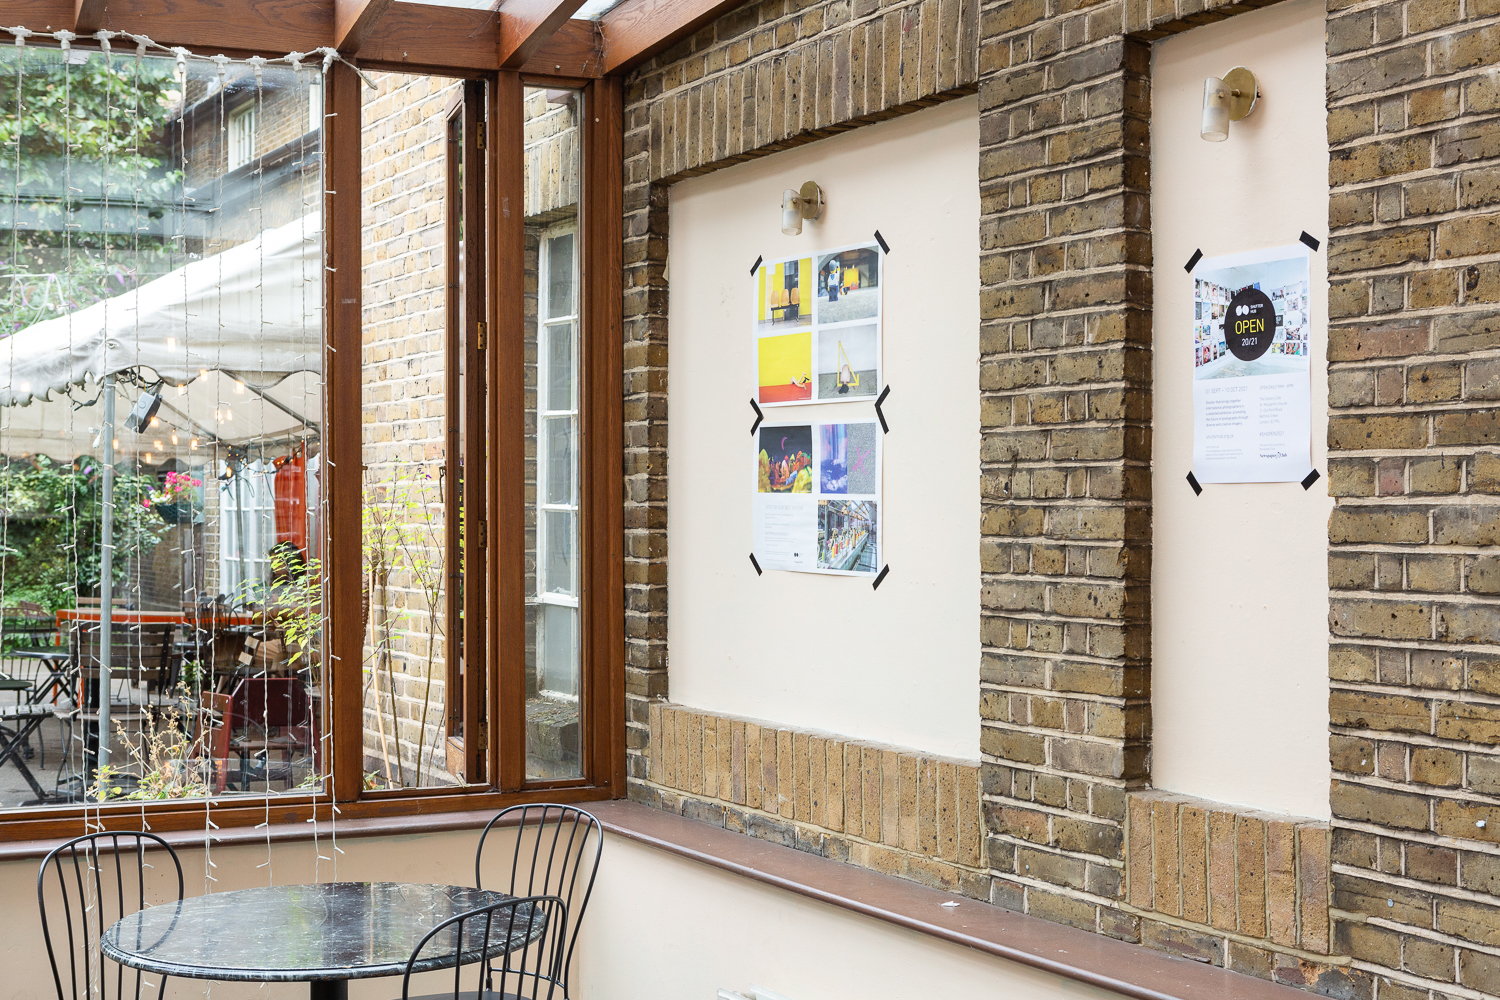 Photograph in the Gallery Café at St. Margaret's House, showing an exhibition of photographs printed on newsprint, tables and chairs in the foreground